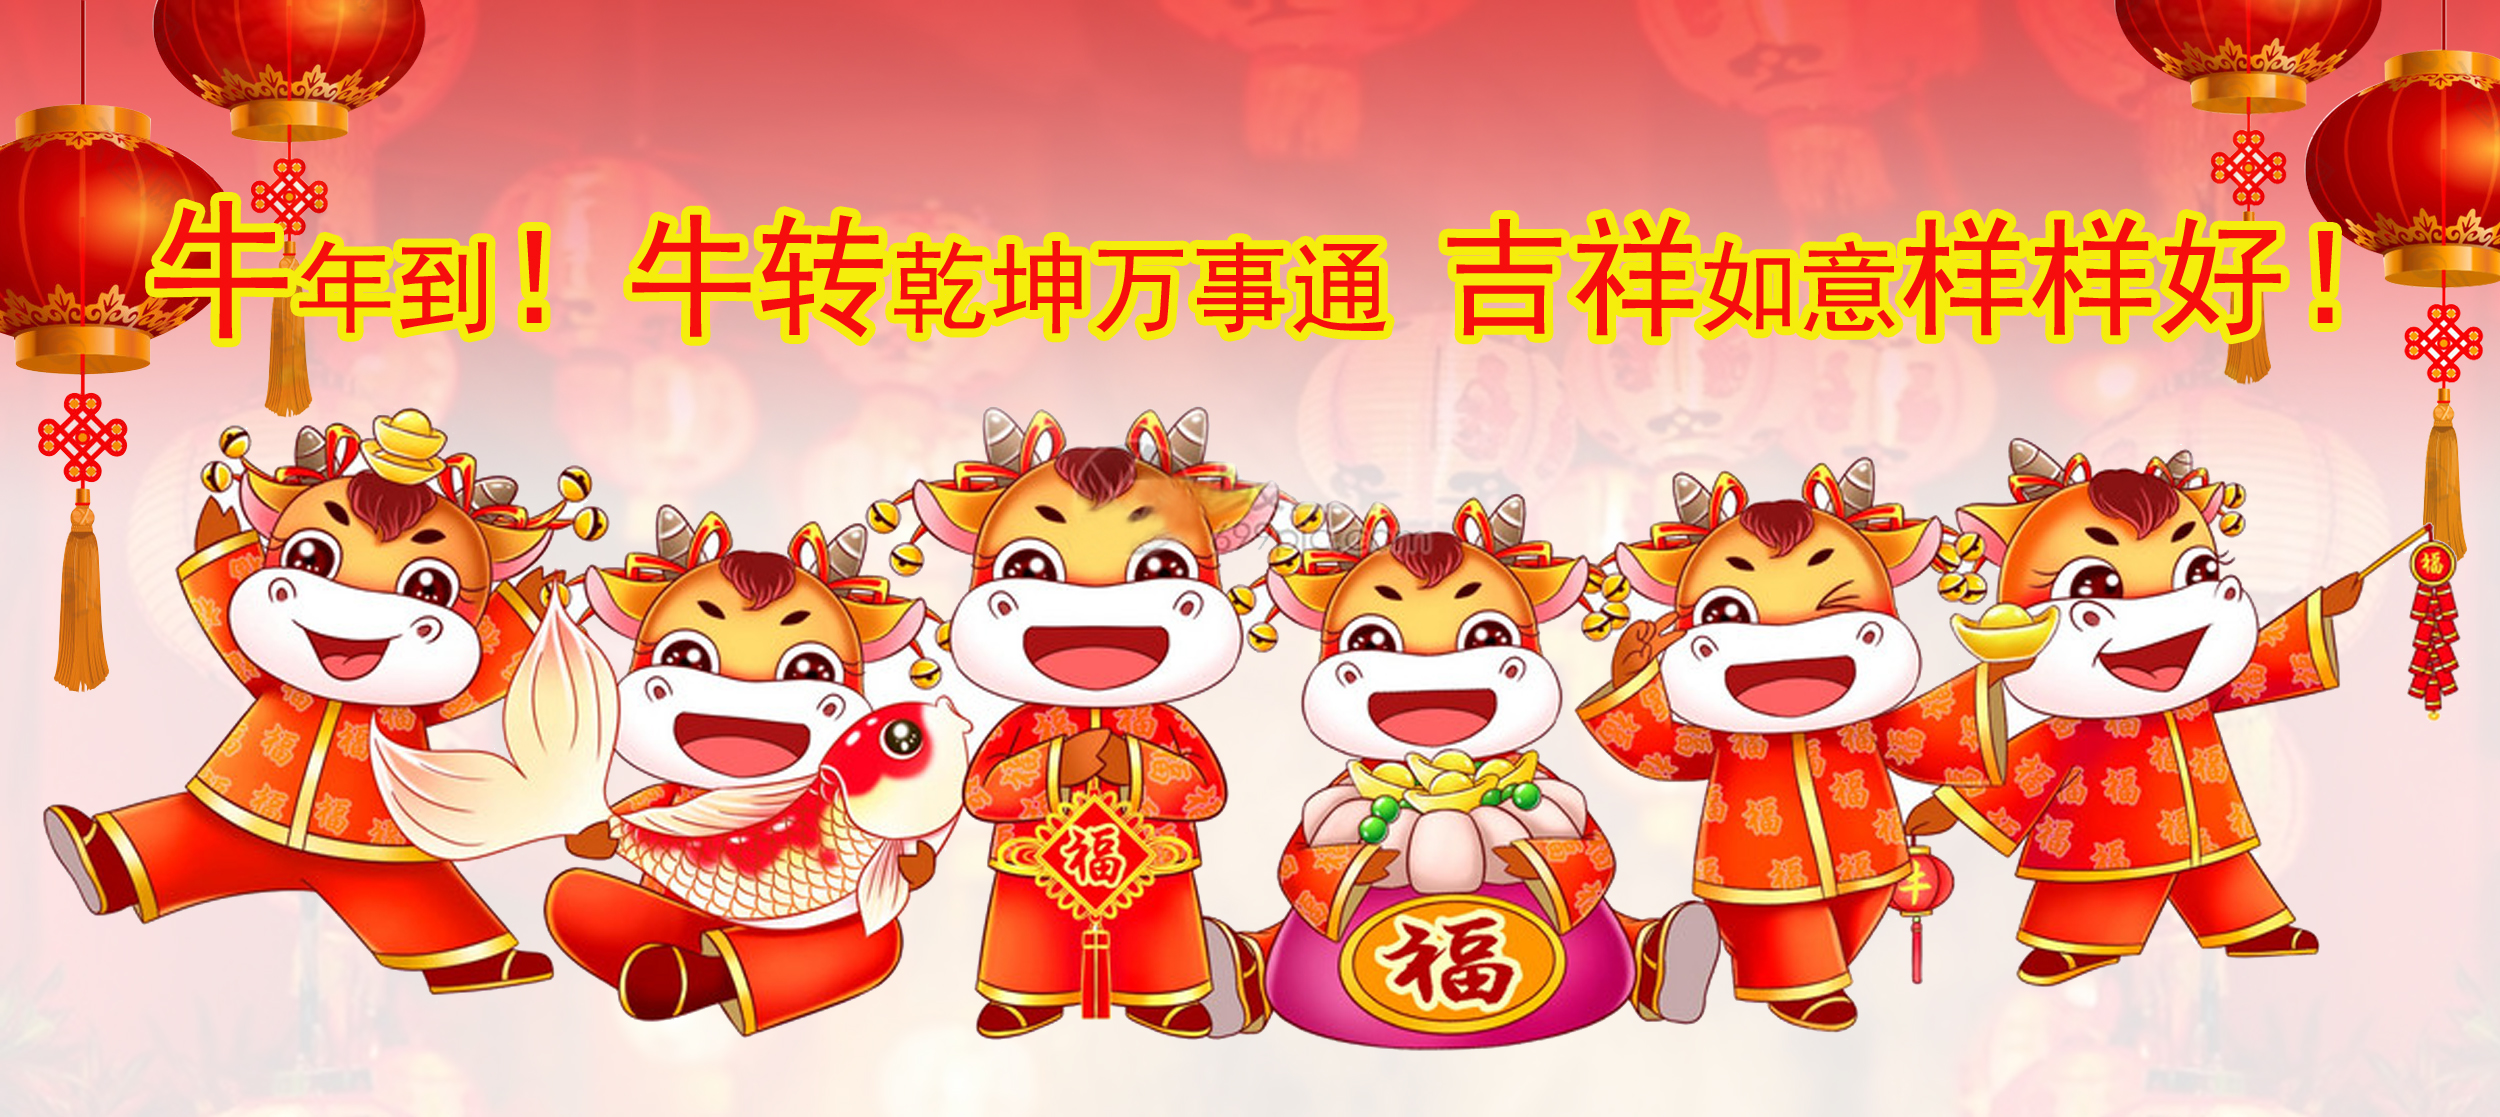 Image OPENING HOURS EXTENDED FOR CNY 2021